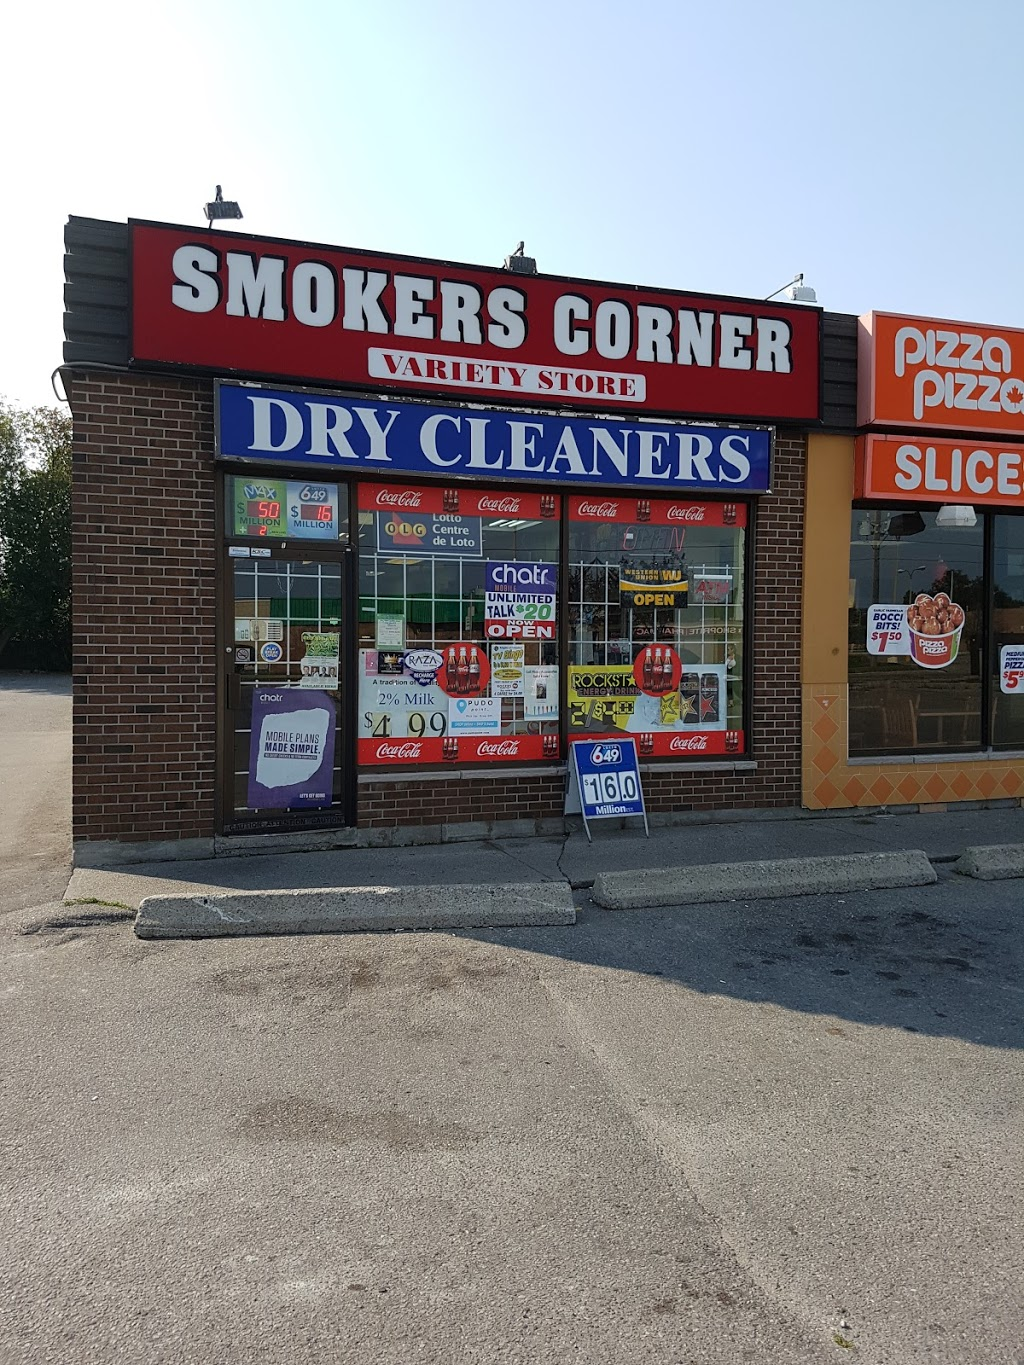 King St Smokers Corner | convenience store | 621 King St E, Oshawa, ON L1H 1G3, Canada | 9055715858 OR +1 905-571-5858